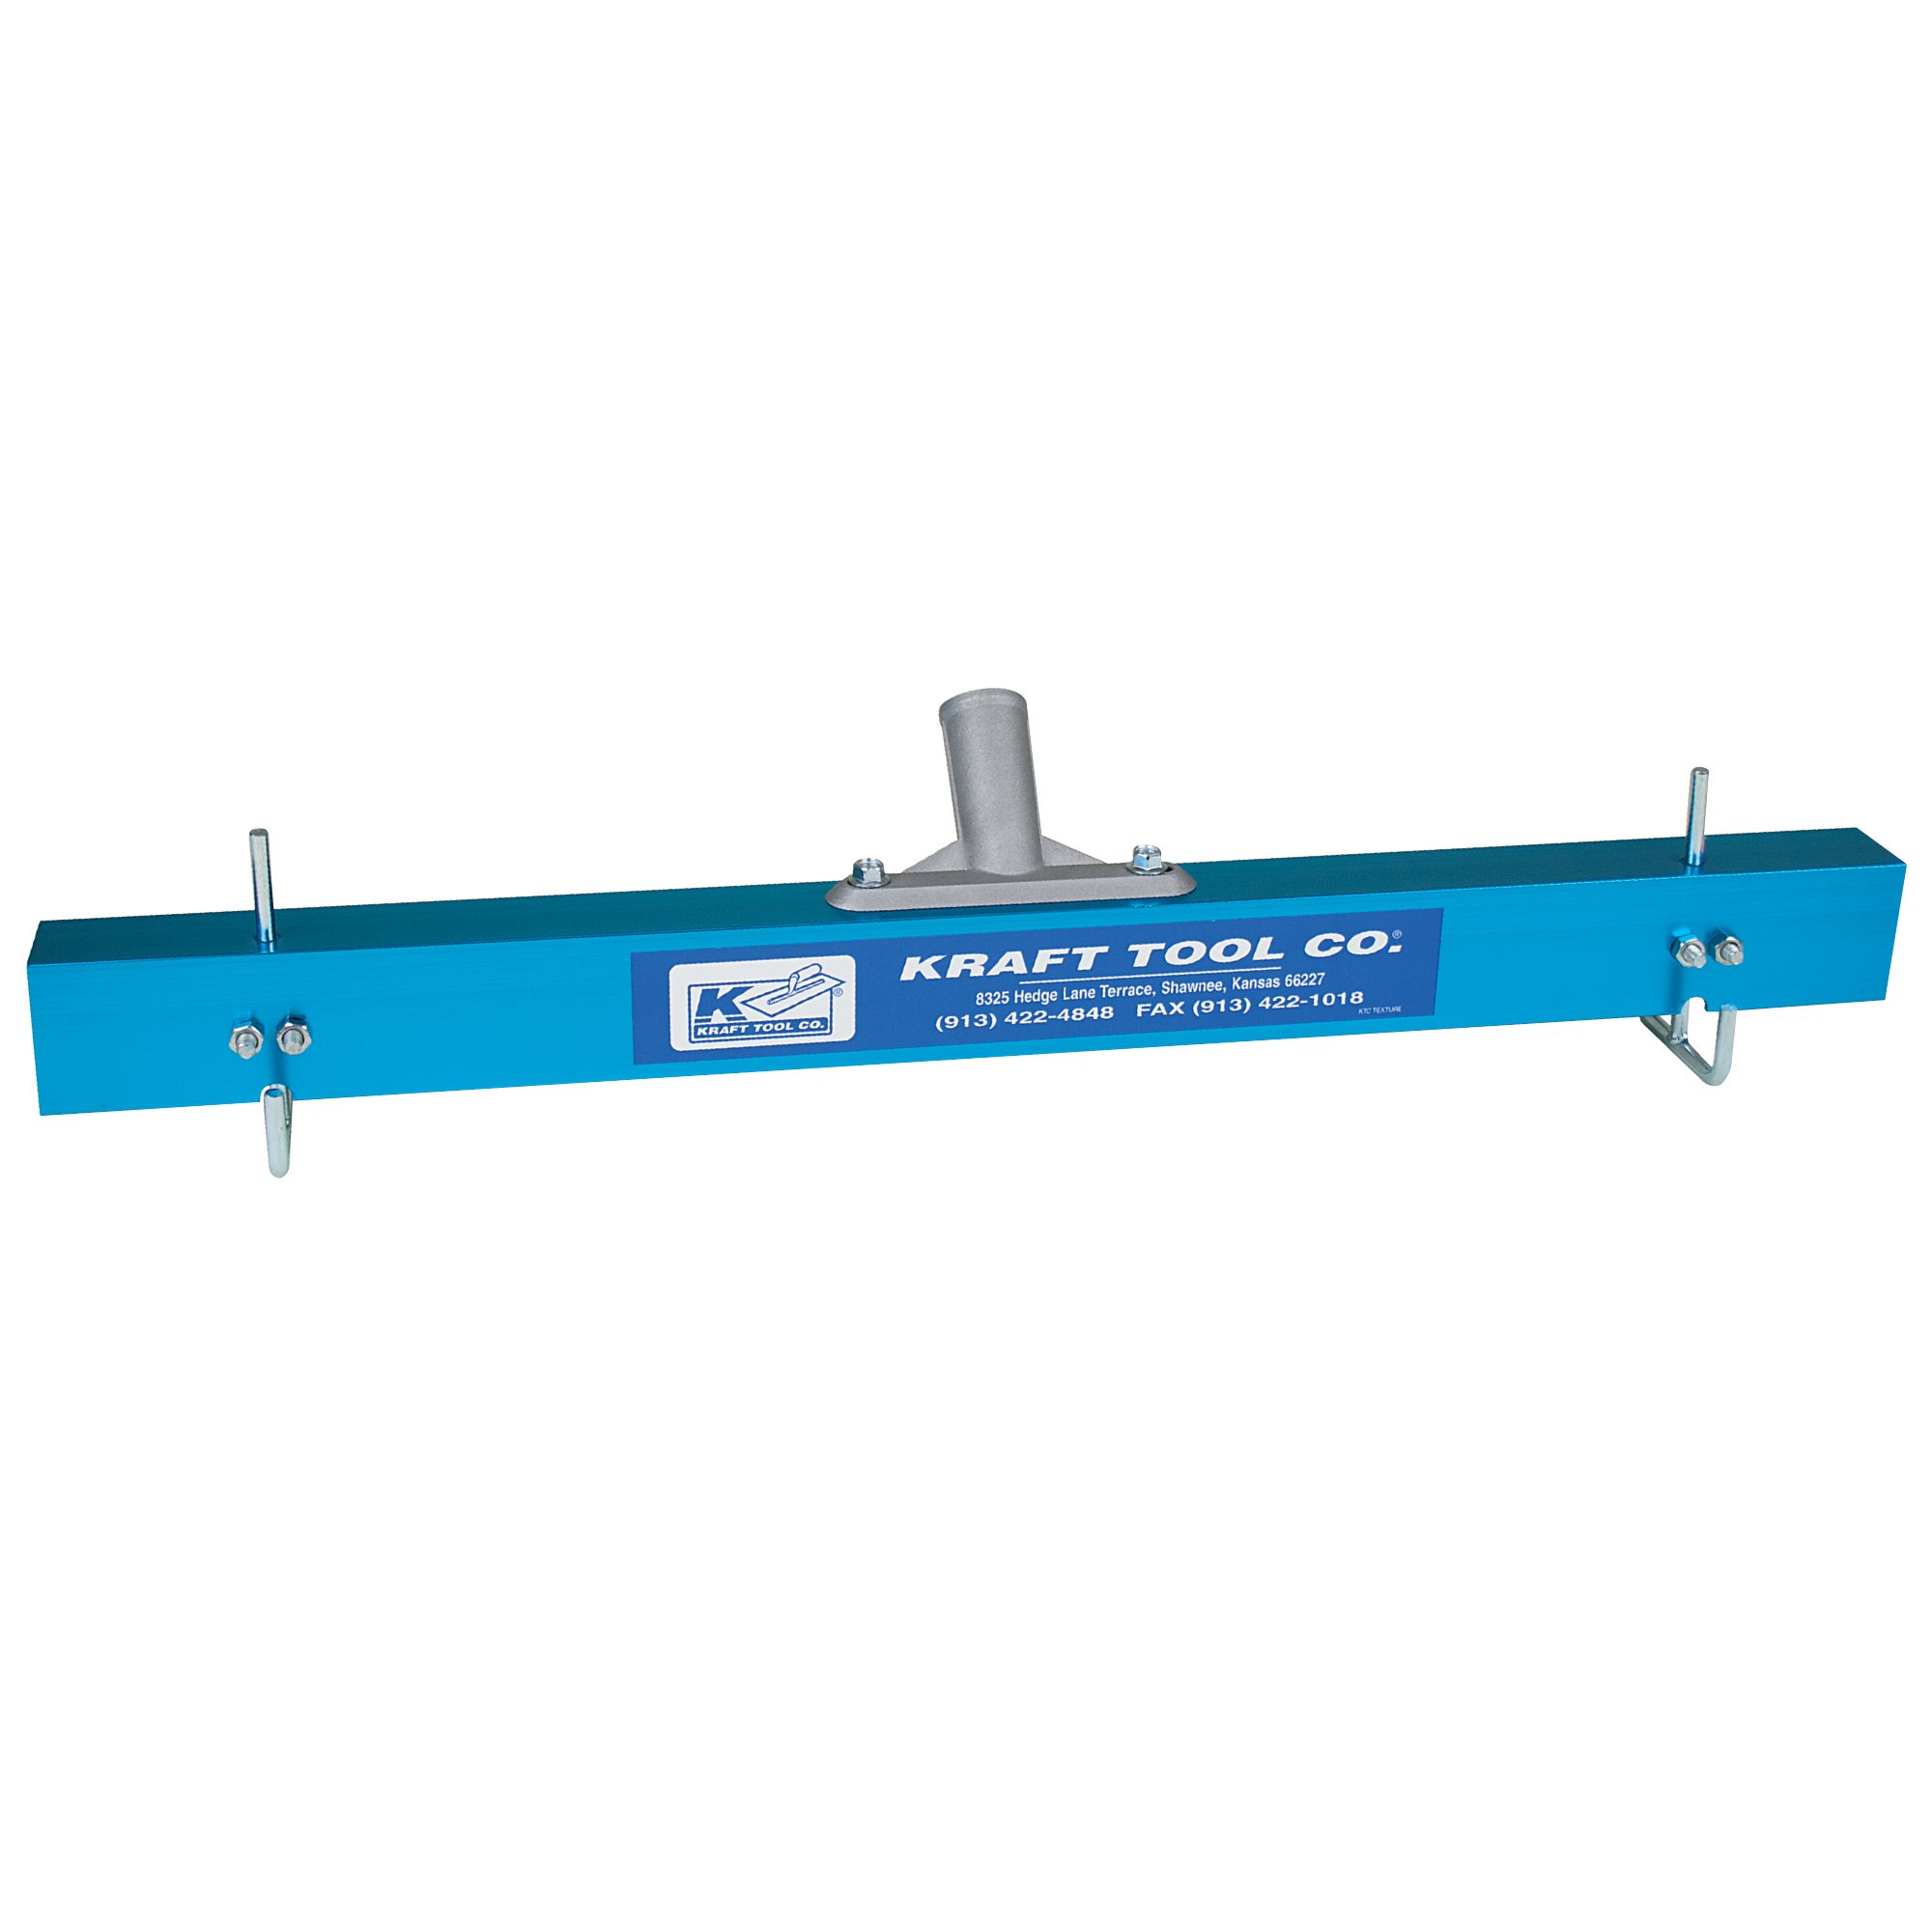 Kraft CC975-01 24-Inch Gauge Rake/Leveler without Handle by Kraft Tool